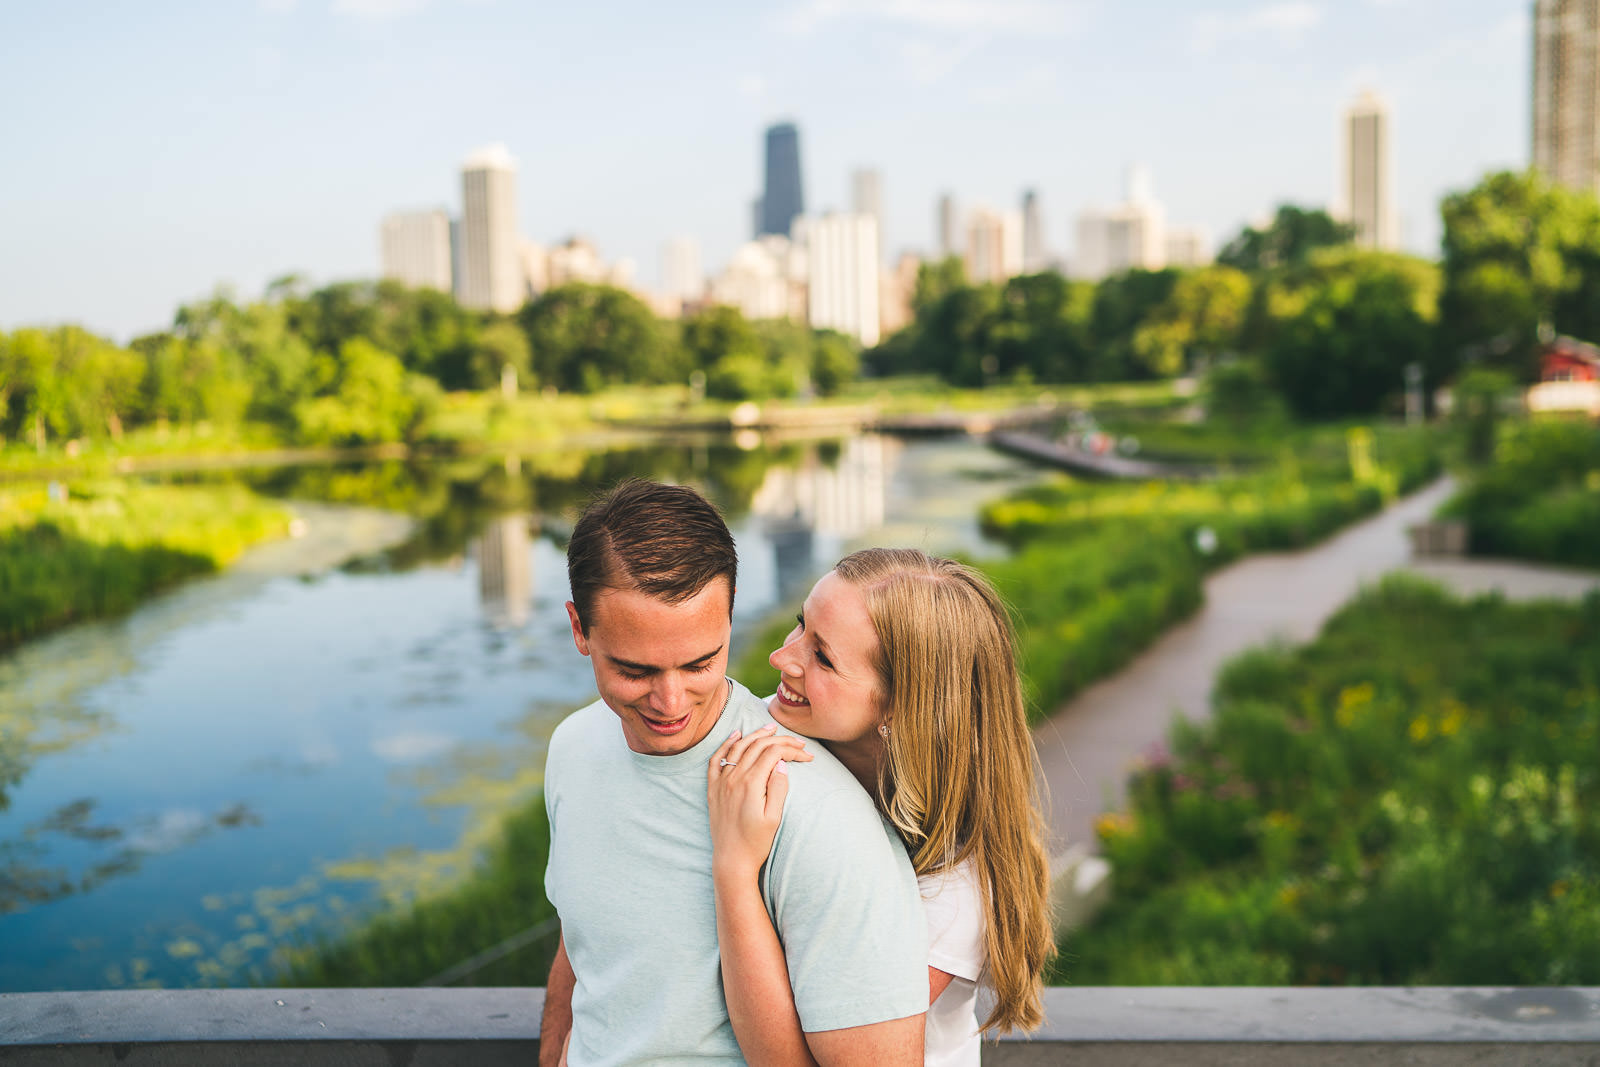 10 south pond bridge photography engagement - Why You NEED an Engagement Session